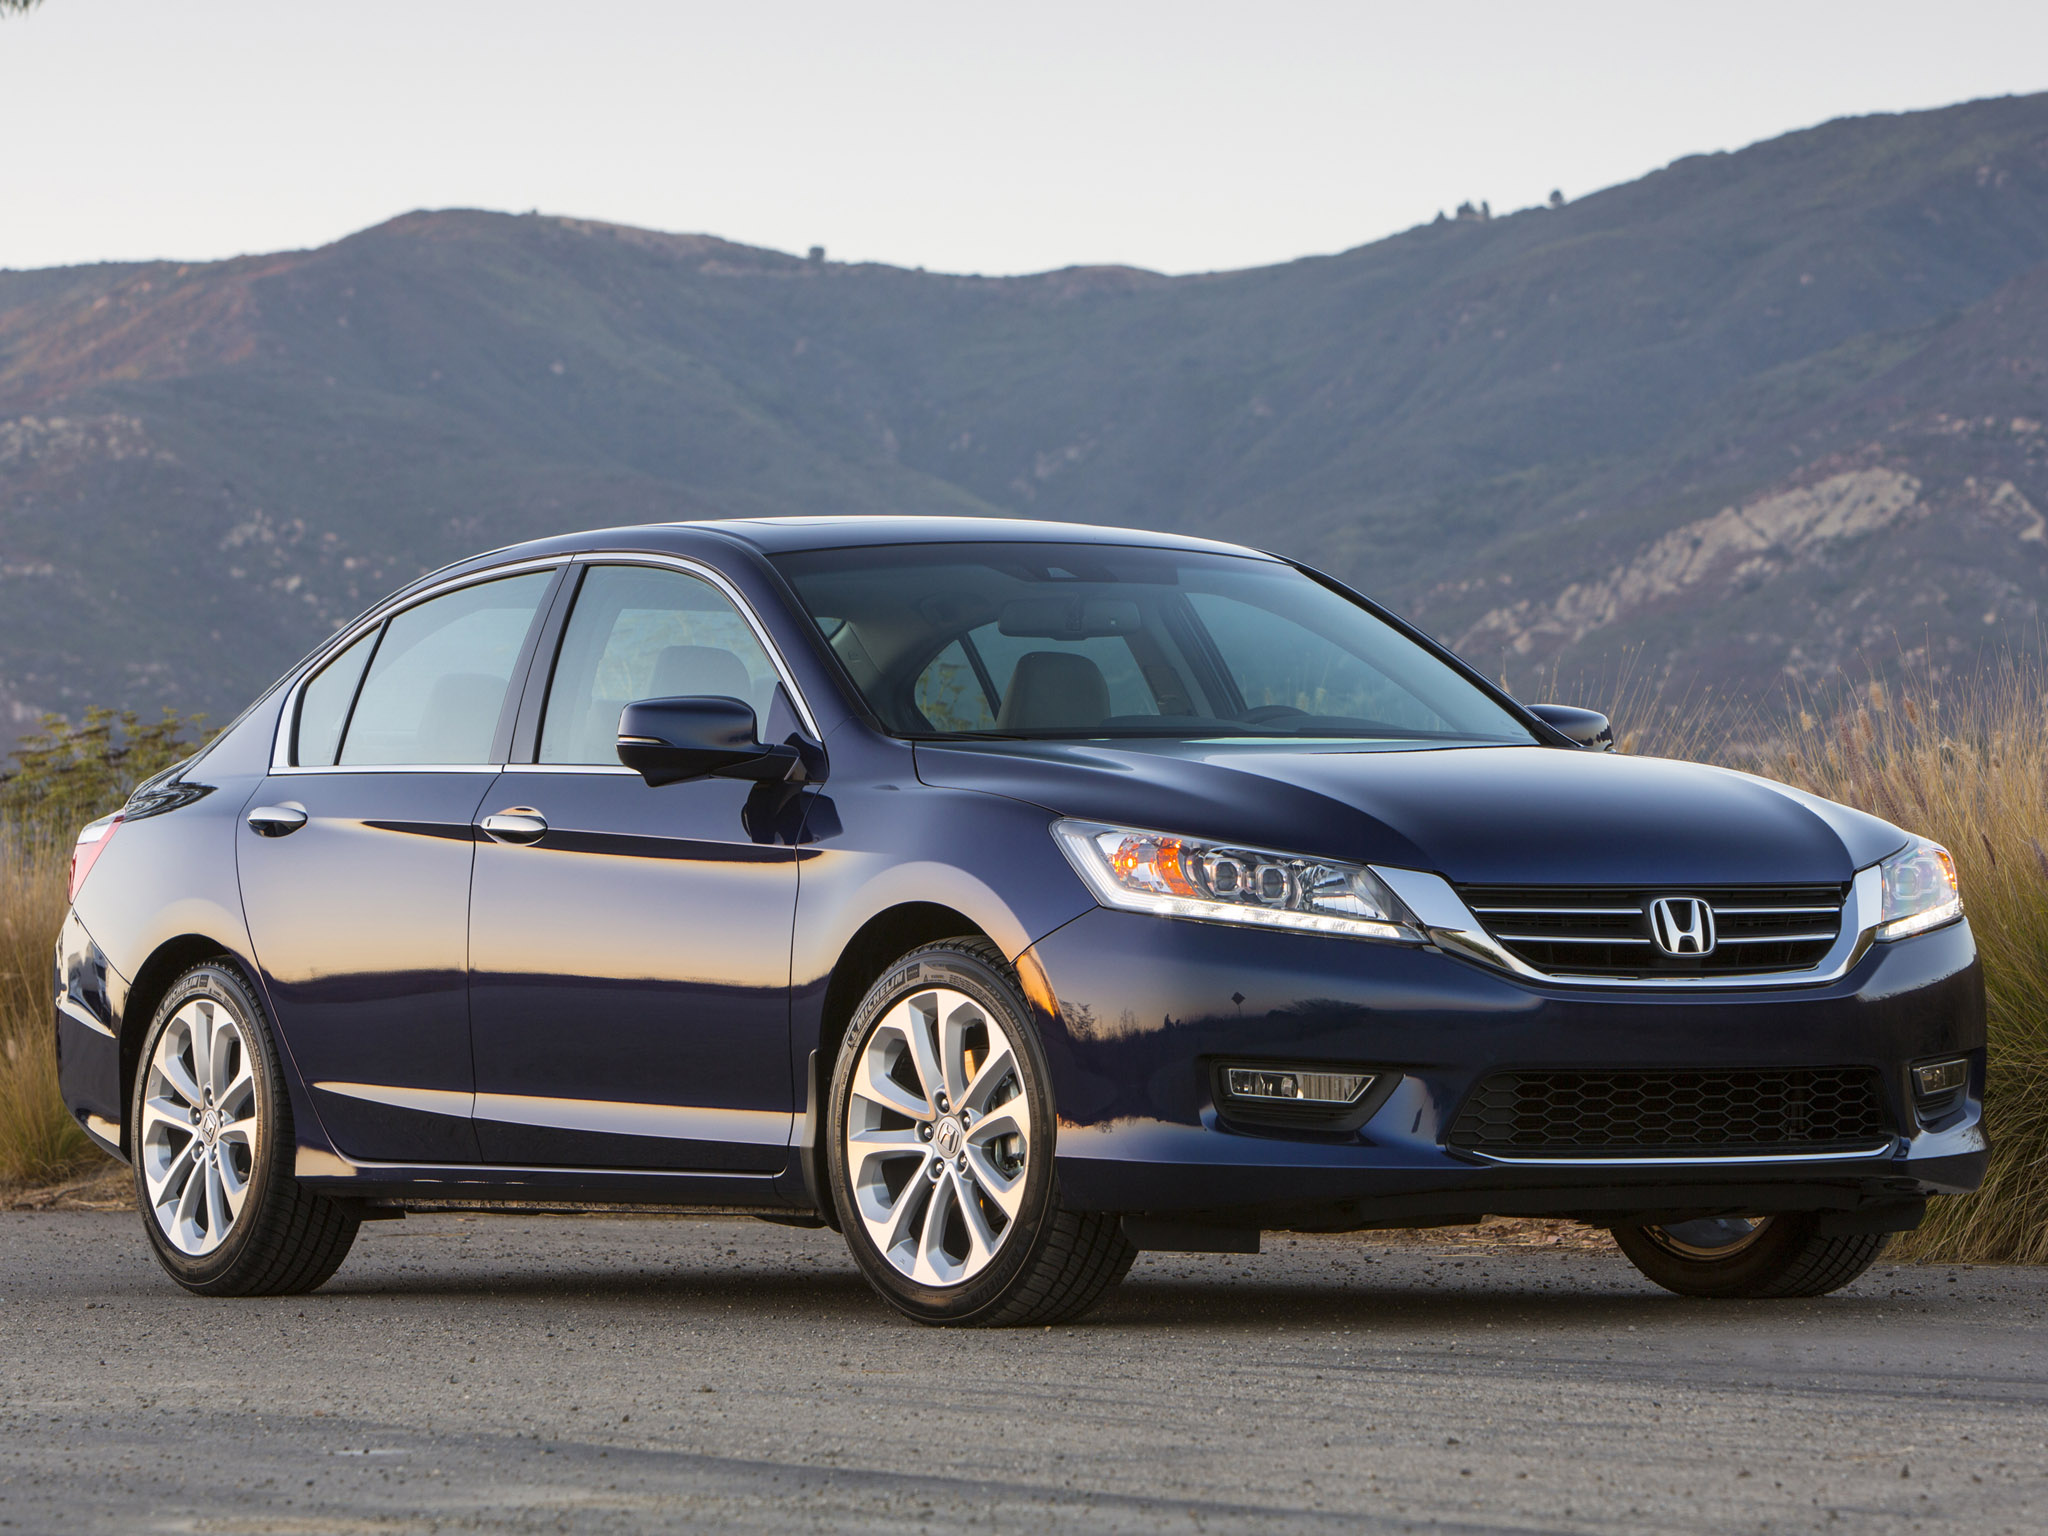 honda accord v6 2013 images amp pictures   becuo